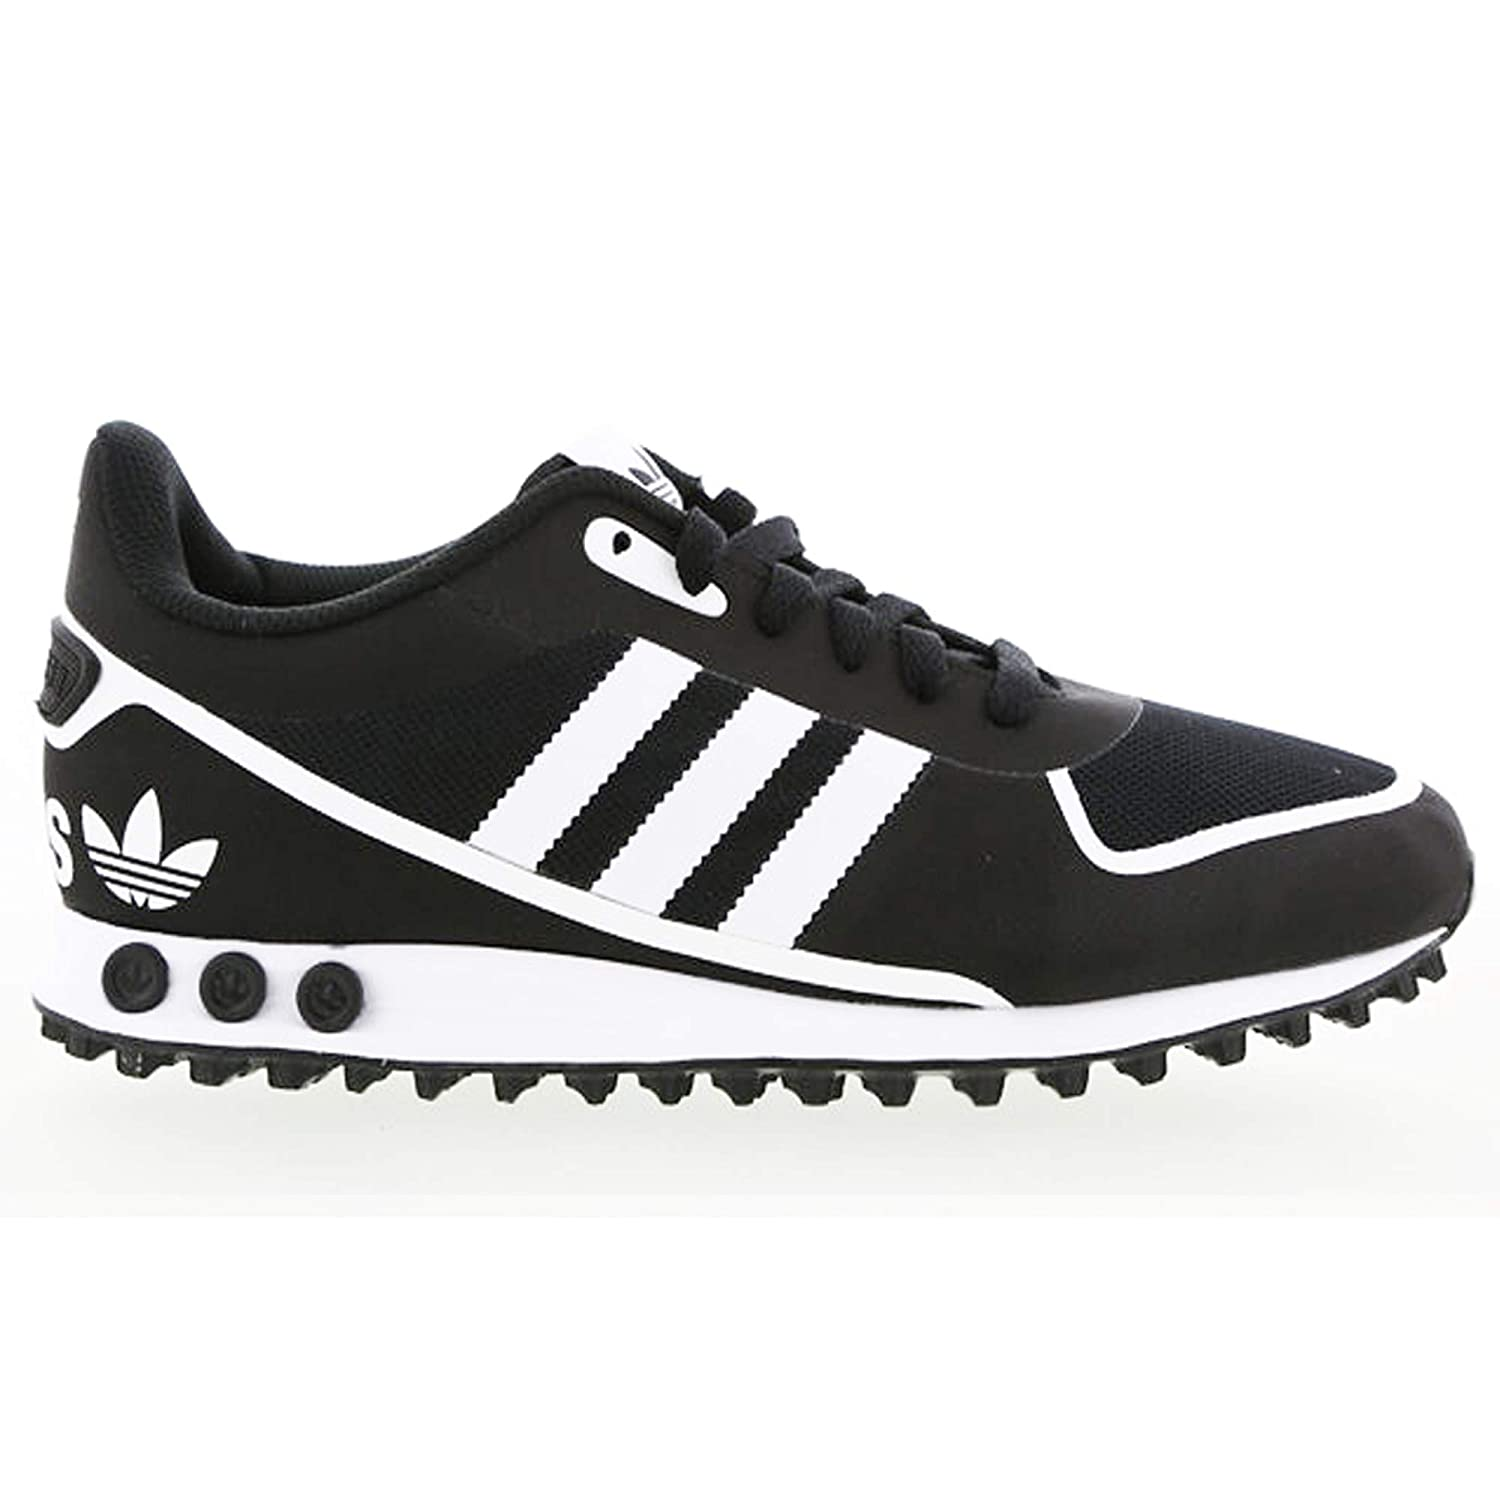 Adidas Originals la Trainer II scarpe da uomo, (Black